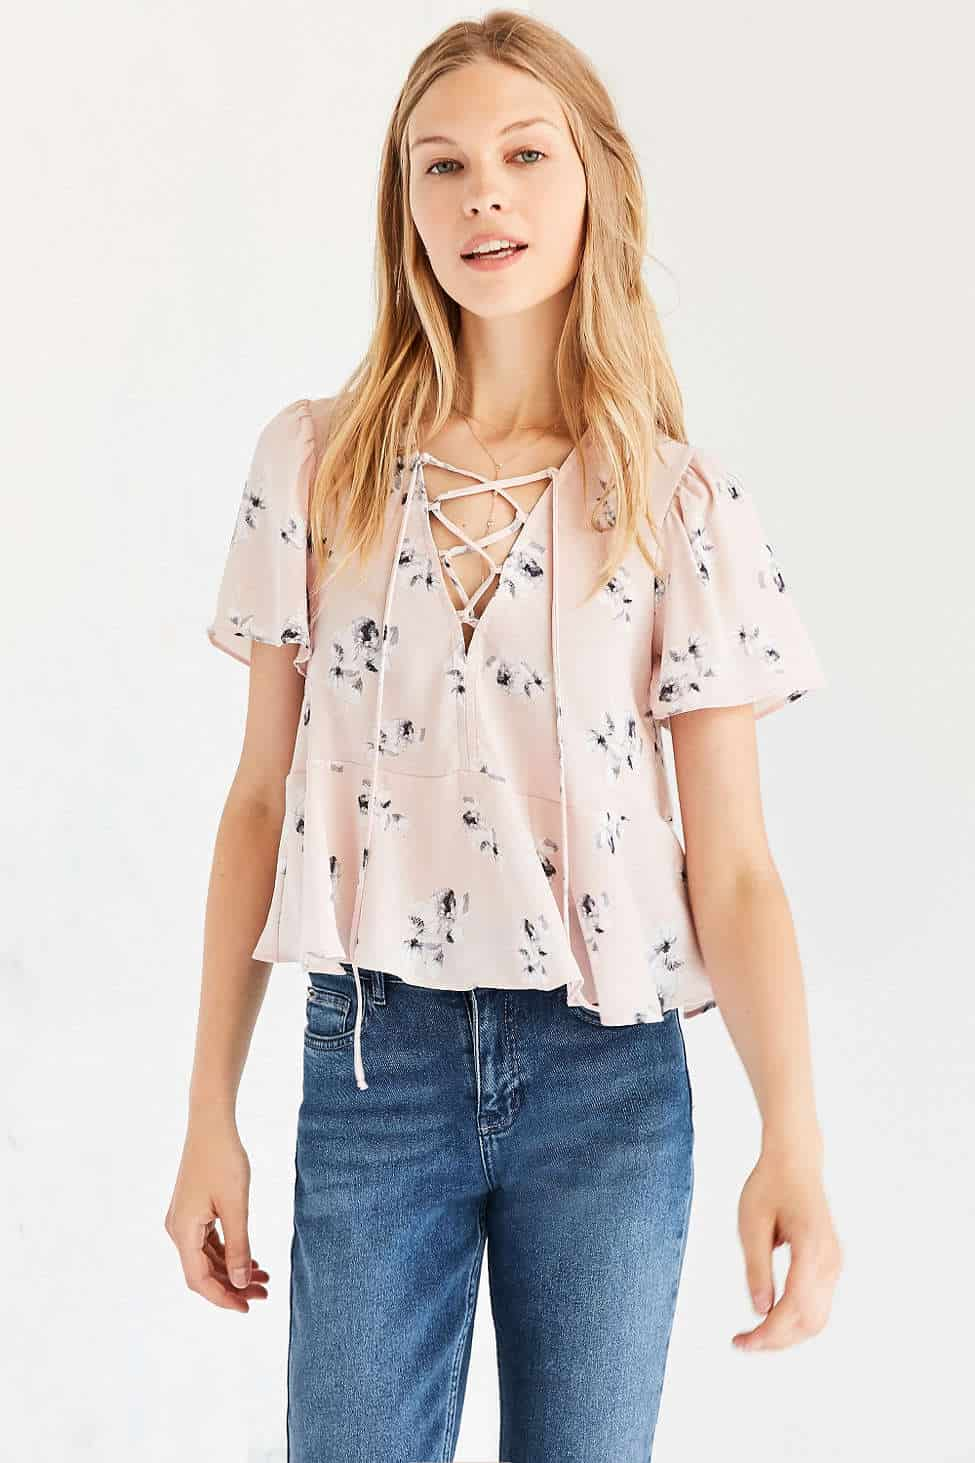 Lace up blouses, the best lace up tops - My Style Vita @mystylevita